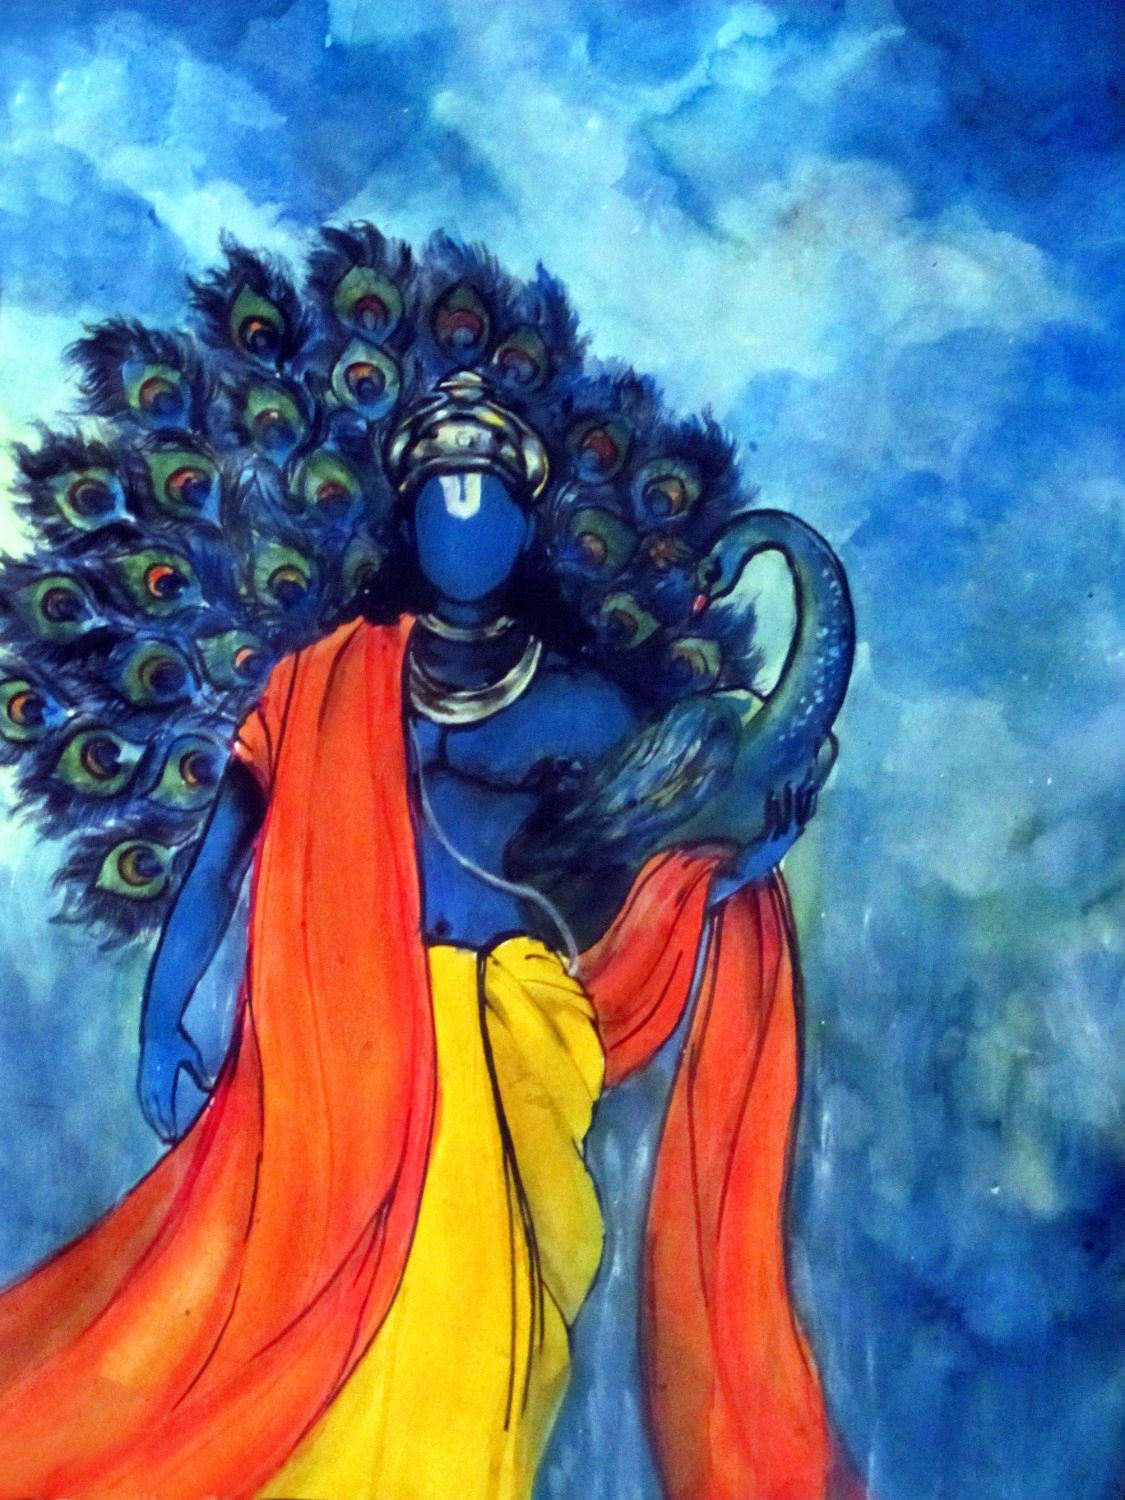 indian art acrylic painting krishna with peacock by raghuraman